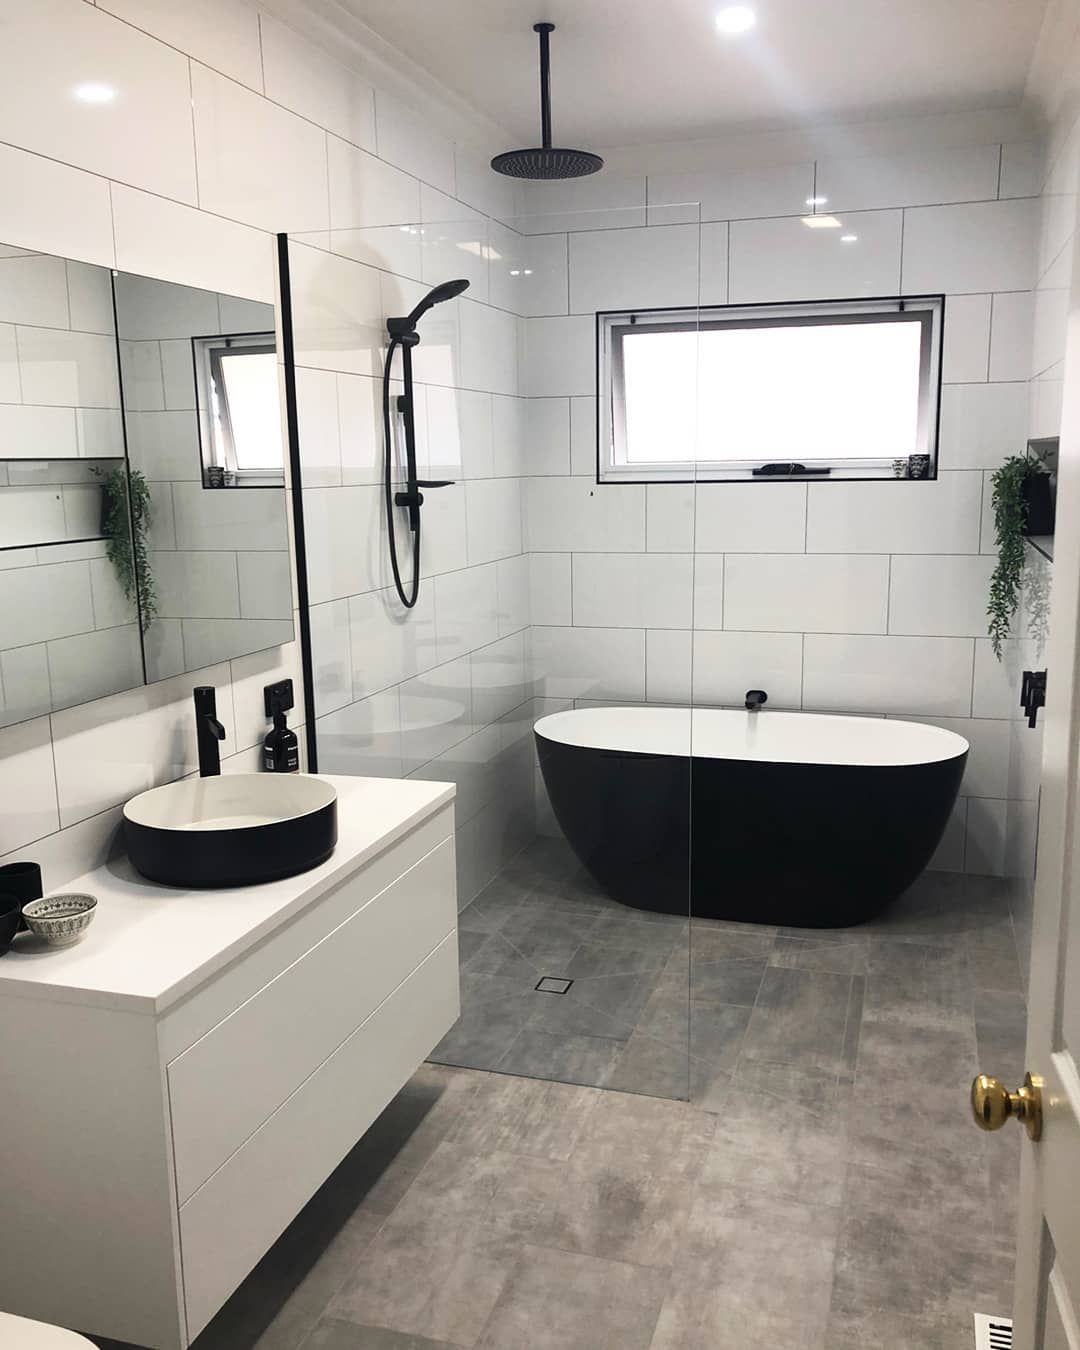 Reece Bathrooms On Instagram A Minimal Bathroom With A Unified